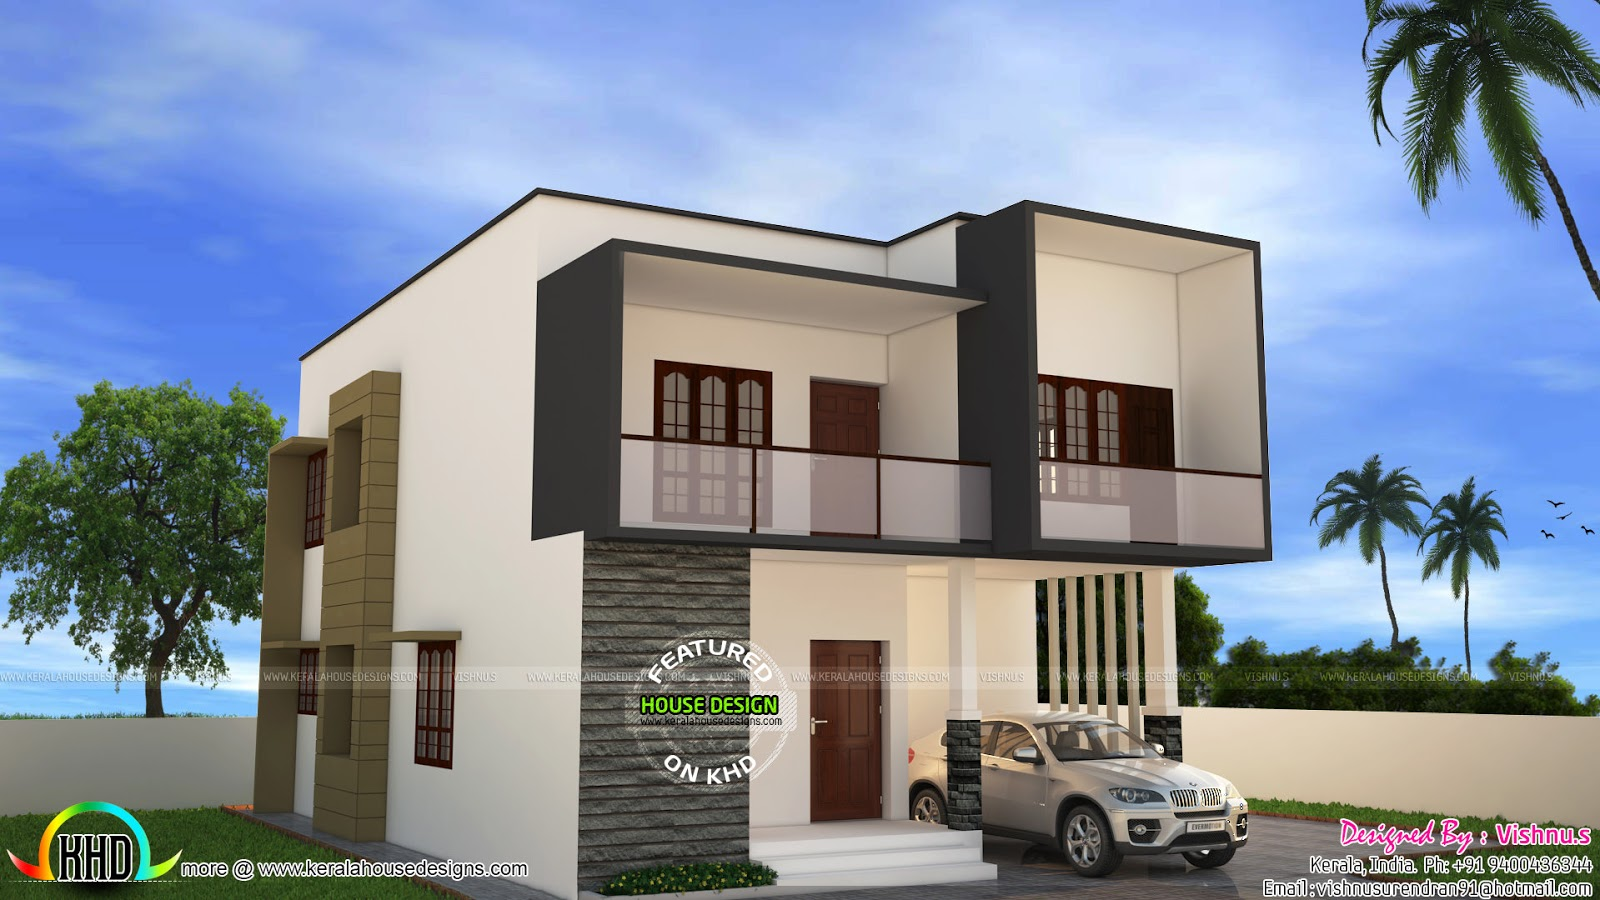 Simple modern house by vishnu s kerala home design and - Simple modern house ...